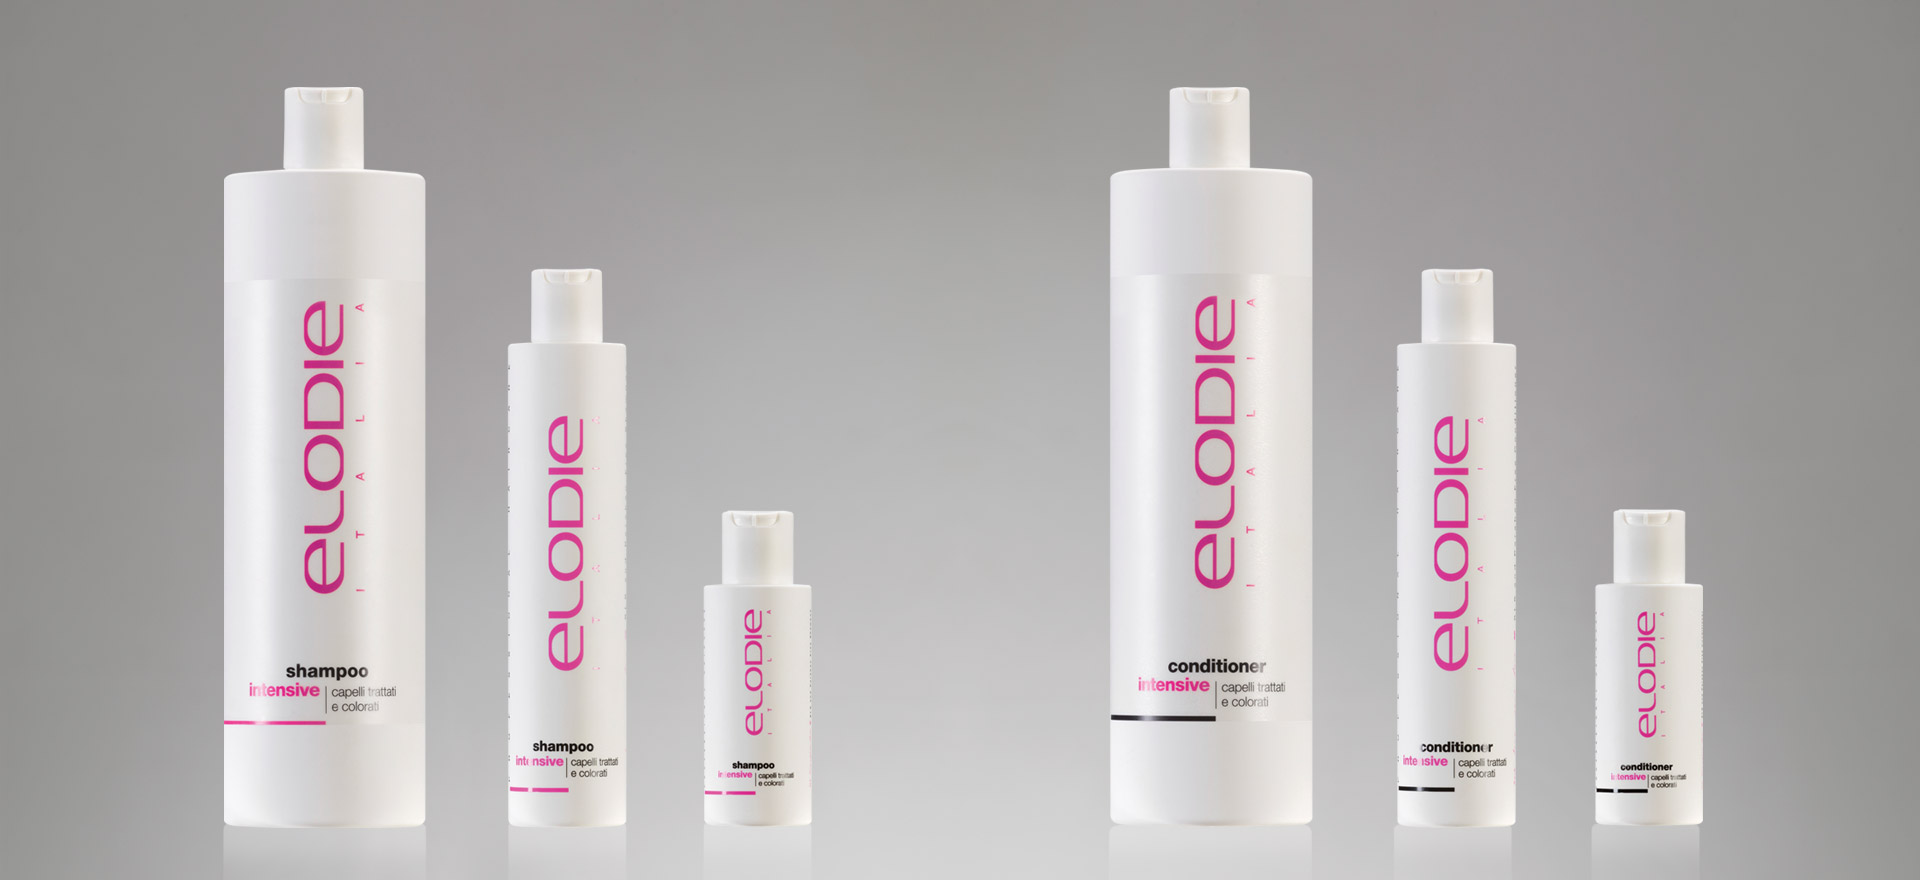 Linea Elodie Shampoo e Conditioner INTENSIVE